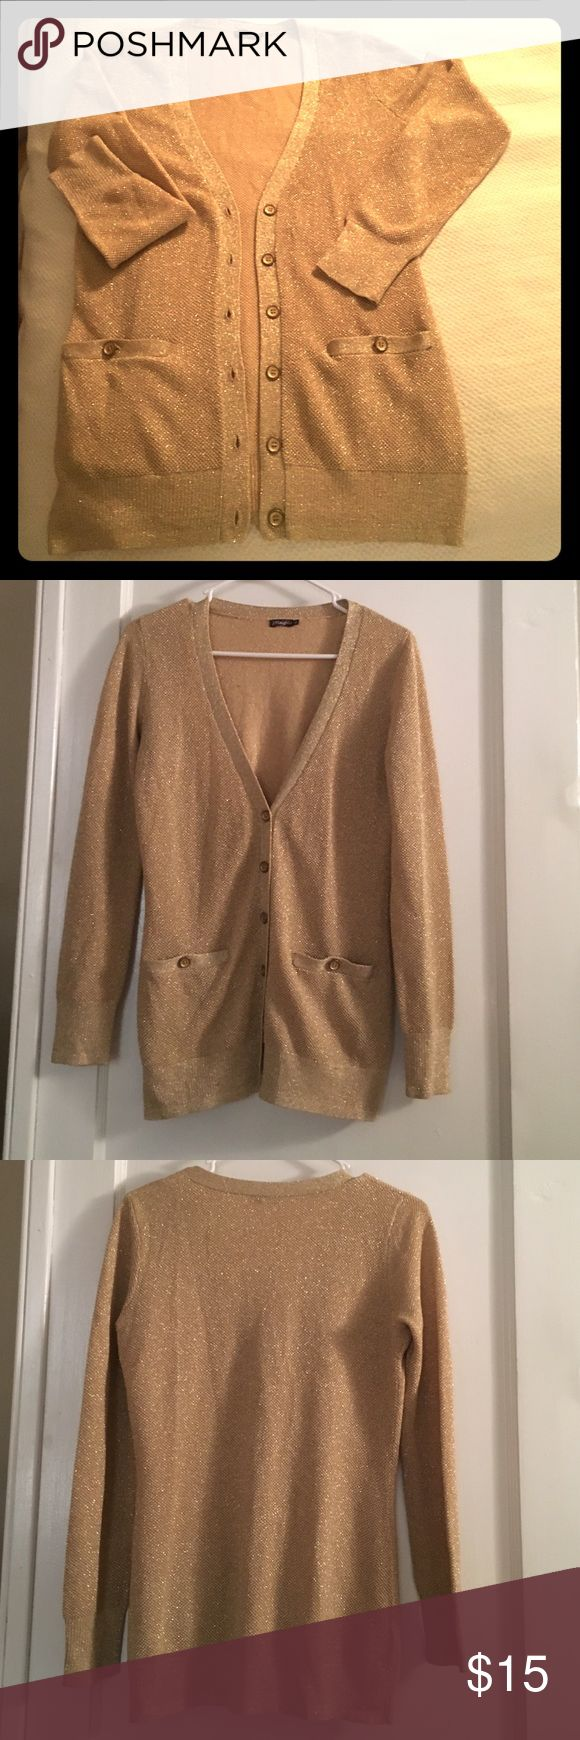 J.McLaughlin XS Gold Cardigan J.McLaughlin XS Gold Cardigan. Worn a handful of times. Great shape. 30% cotton, 30% modal, 26% polyester, 14% metallic J. McLaughlin Sweaters Cardigans